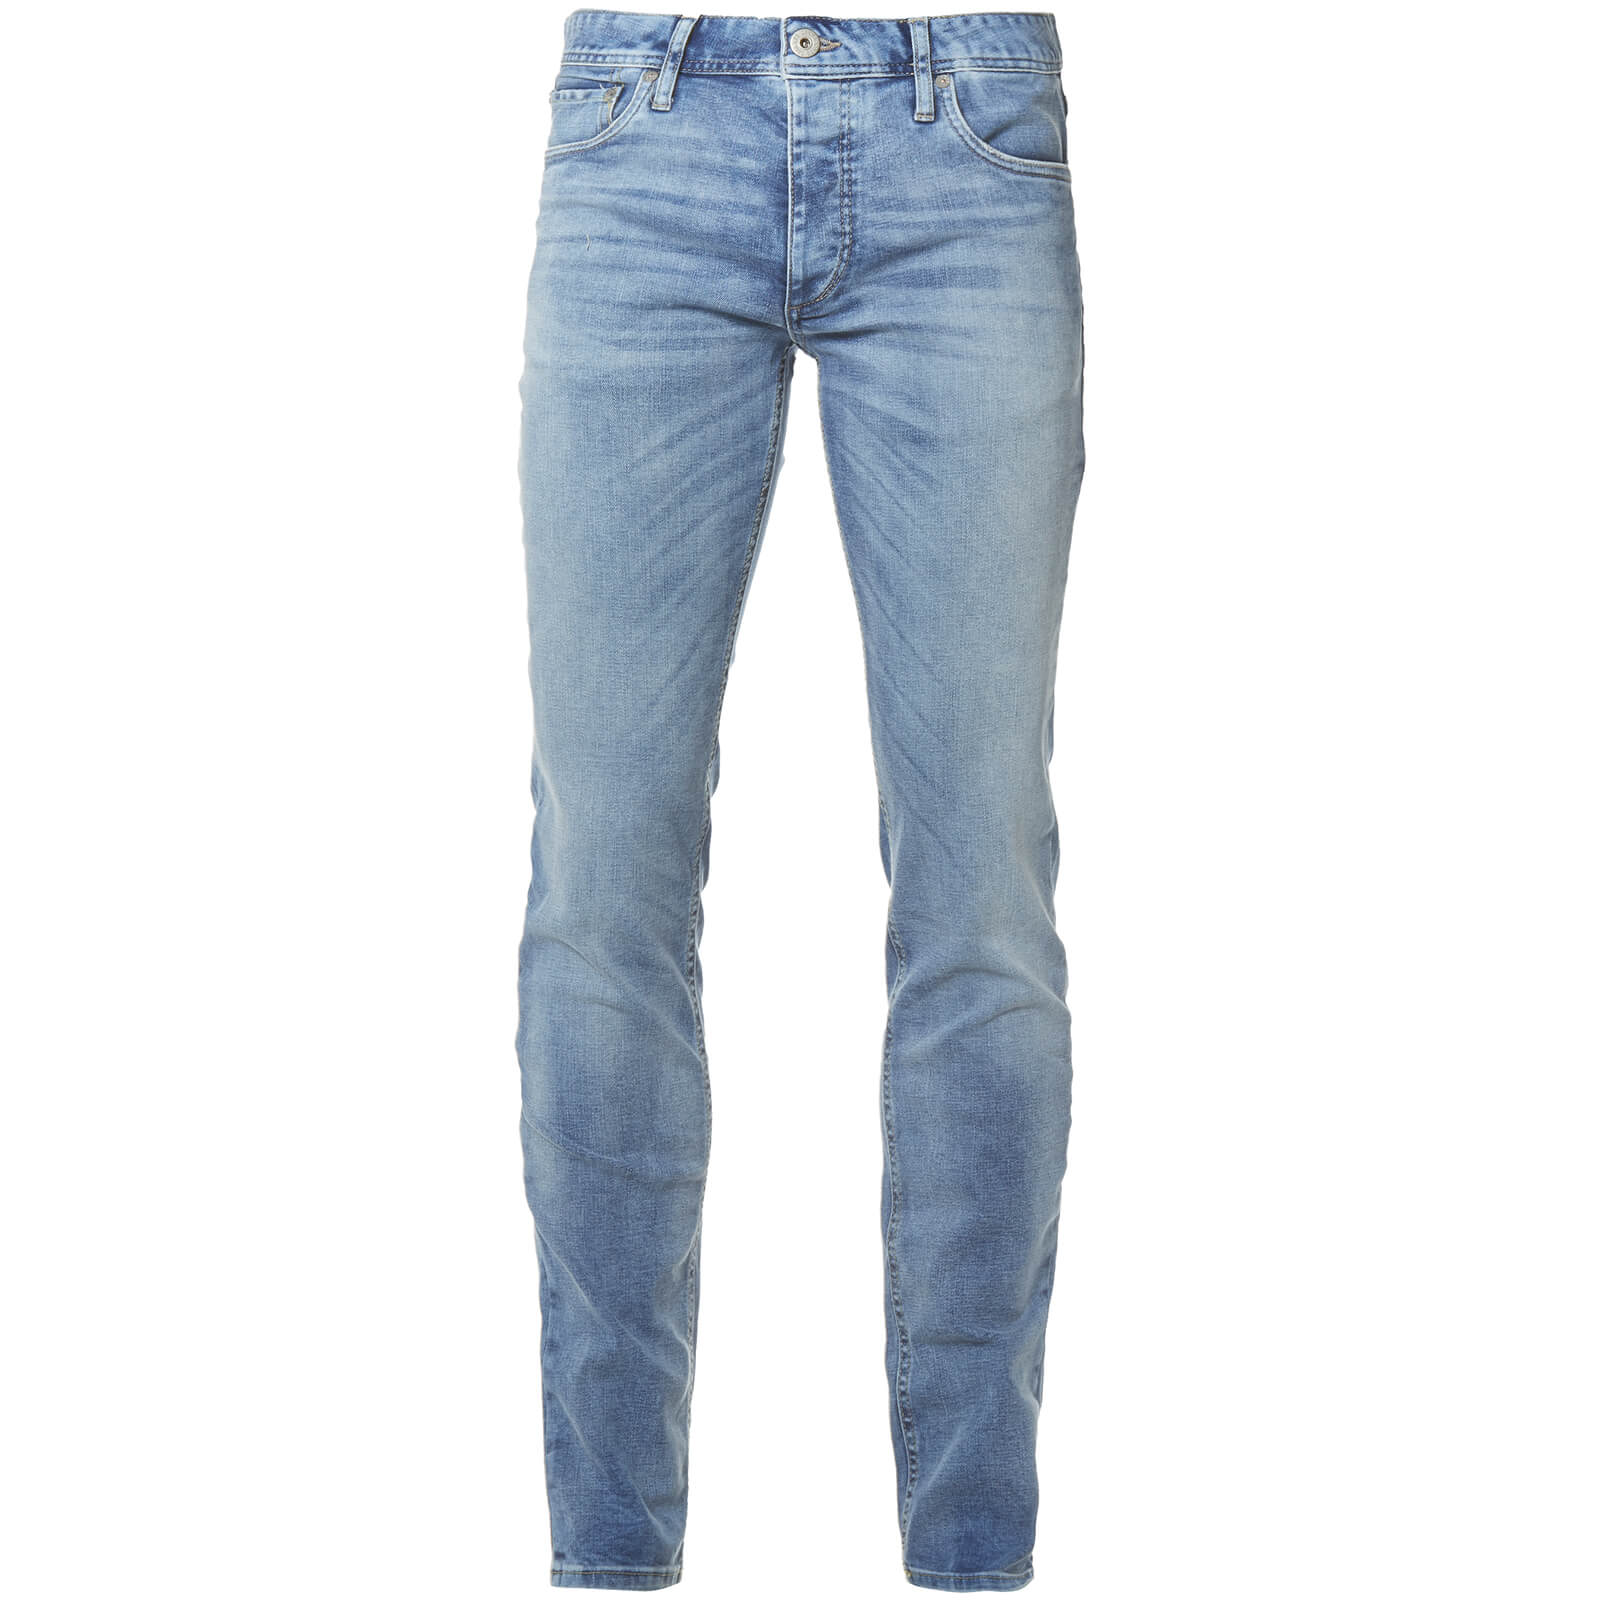 Perseo Pace della mente Frutteto  Jack & Jones Originals Men's Tim 722 Slim Fit Jeans - Blue Denim Mens  Clothing - Zavvi UK